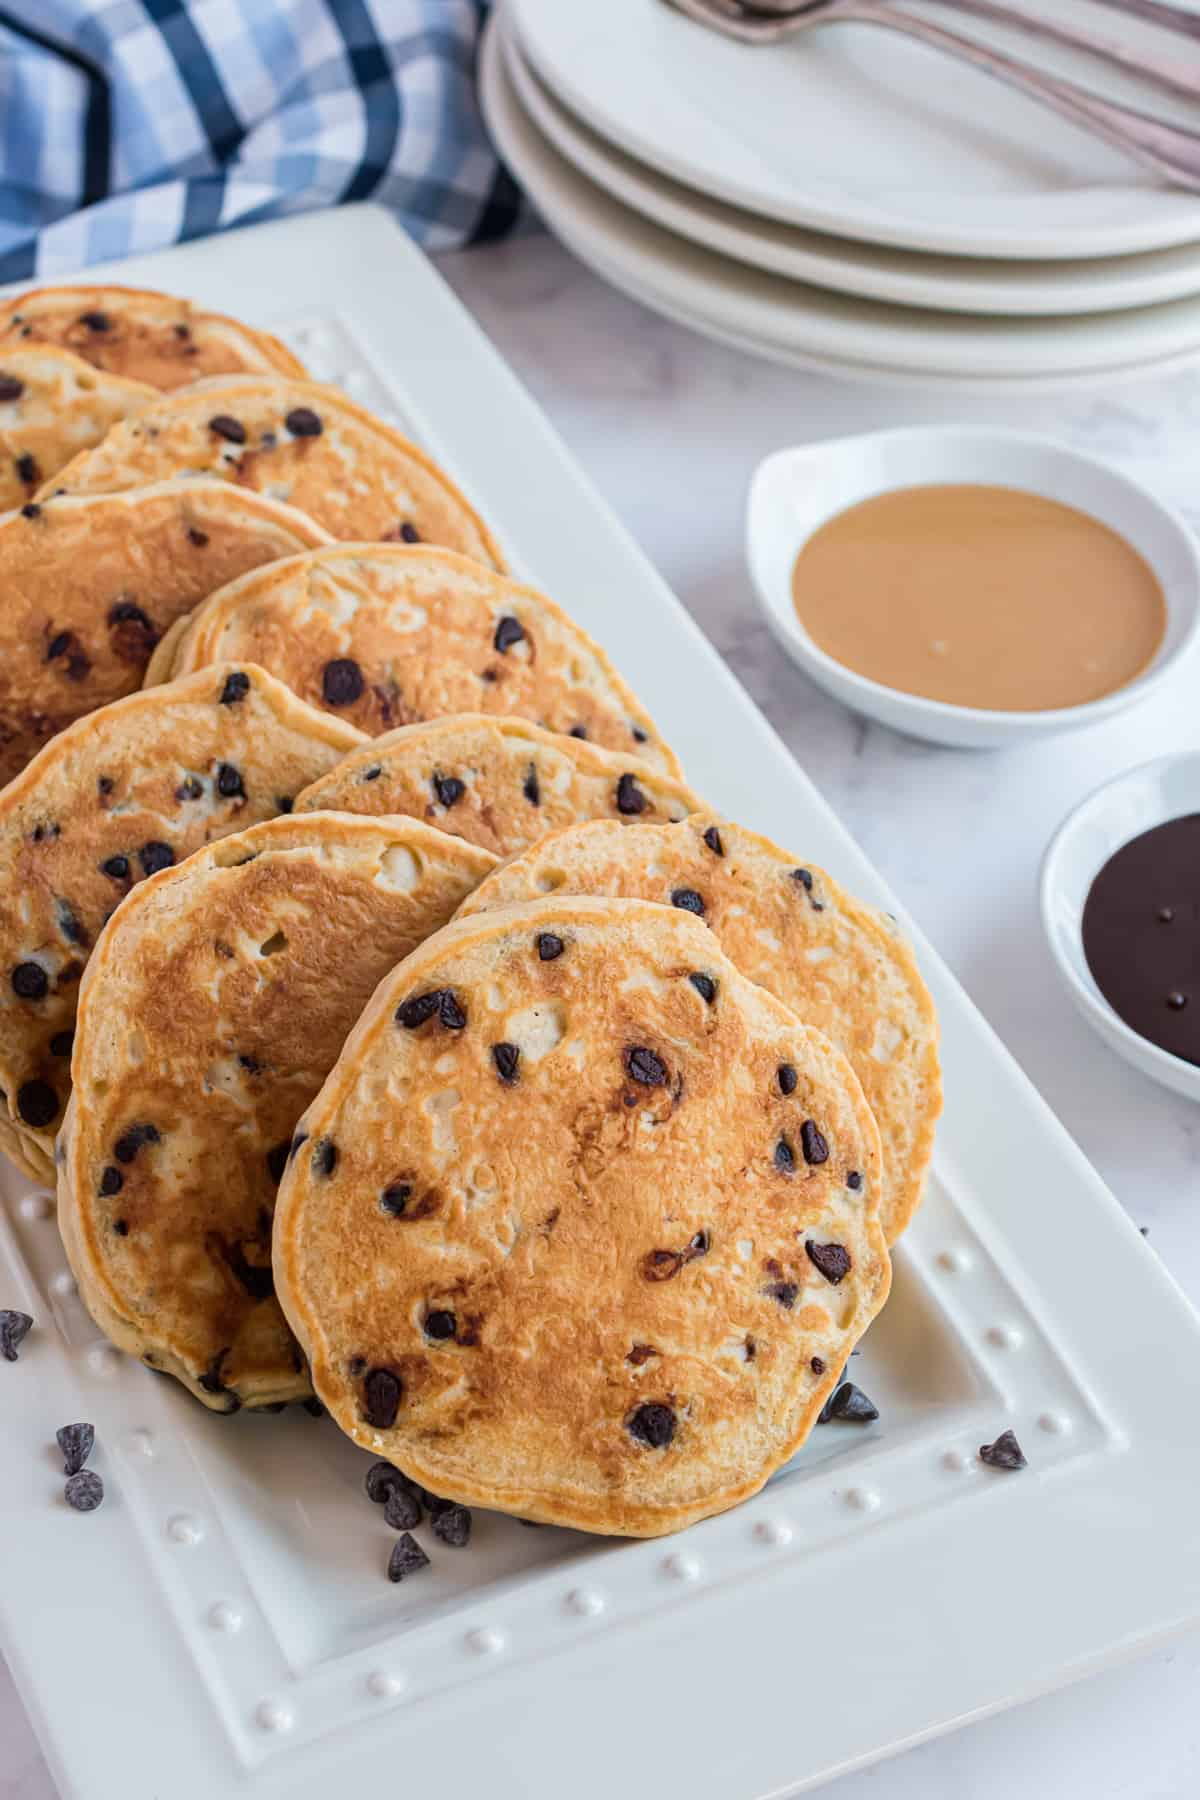 Pancakes studded with chocolate chips on a white platter.